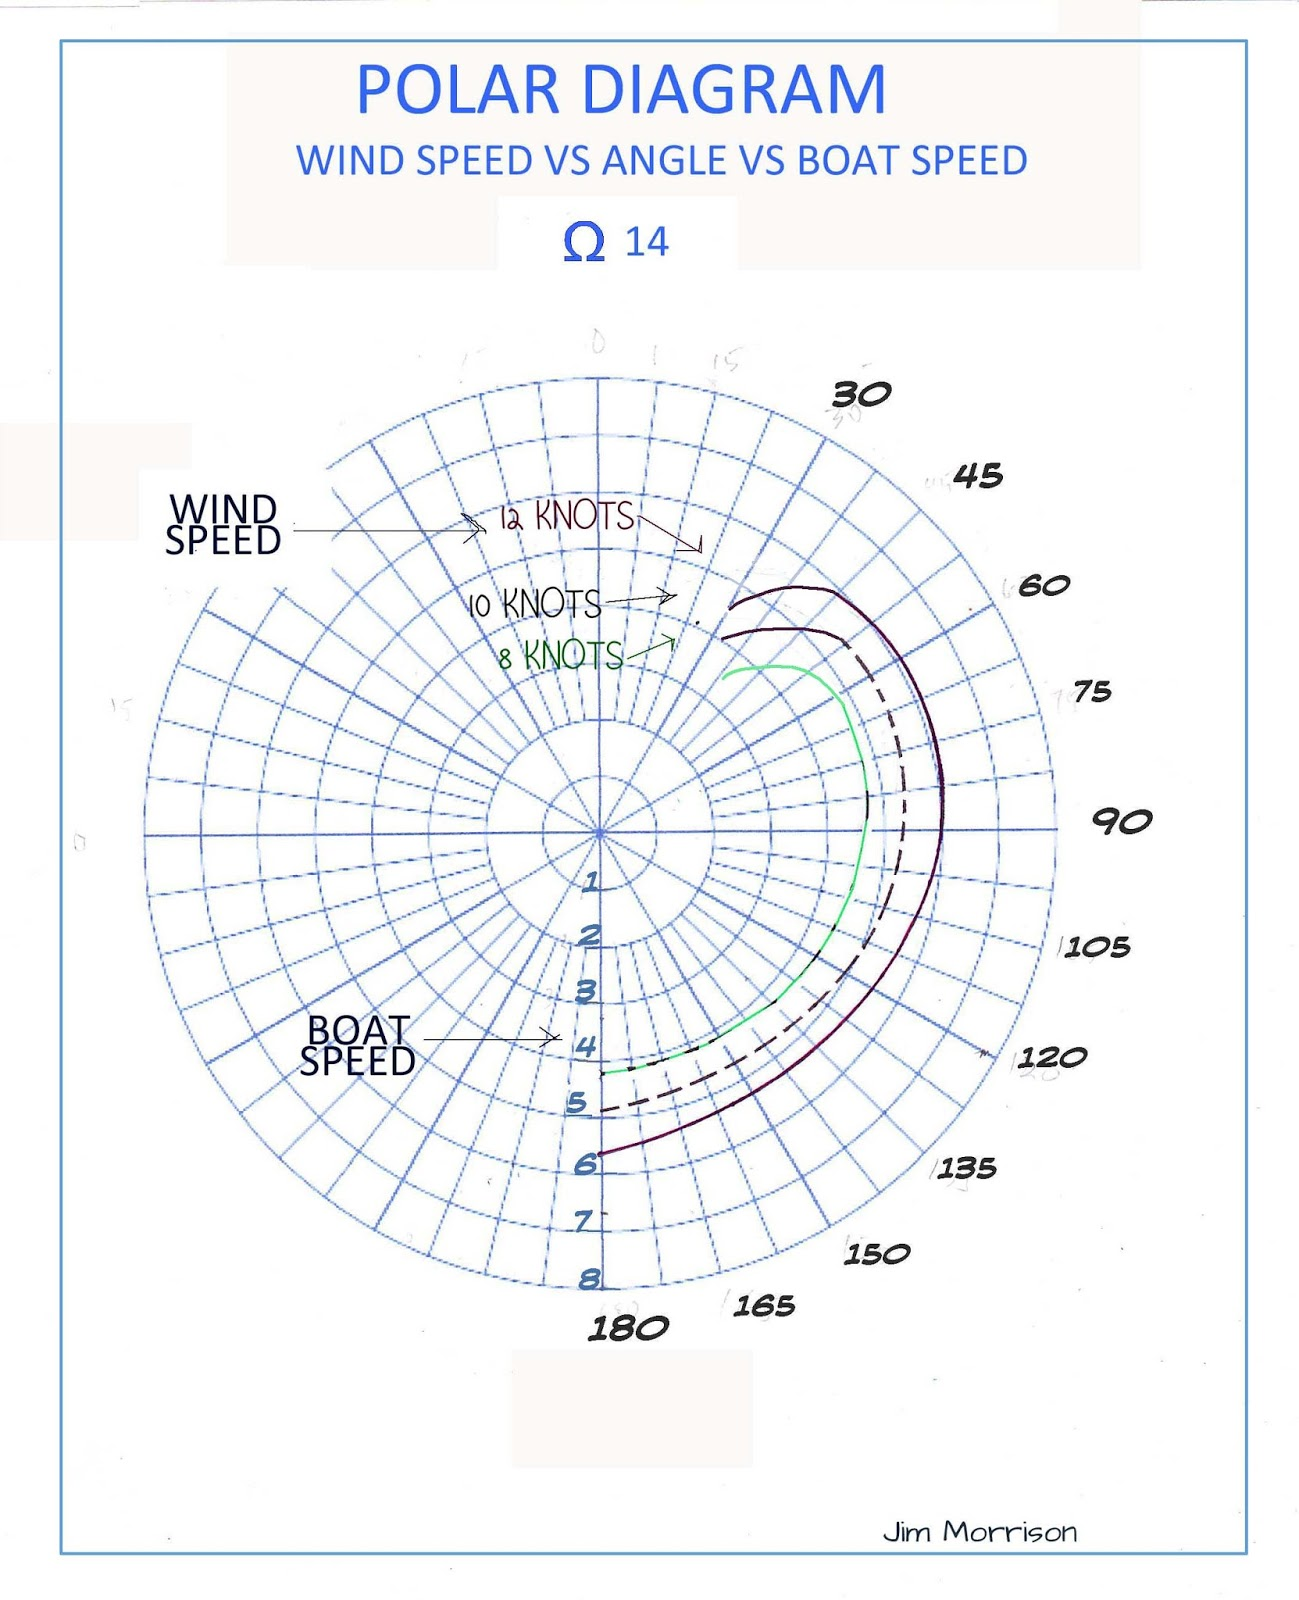 hight resolution of omega 14 sailboat omega 14 polar diagram for wind speed vs angle